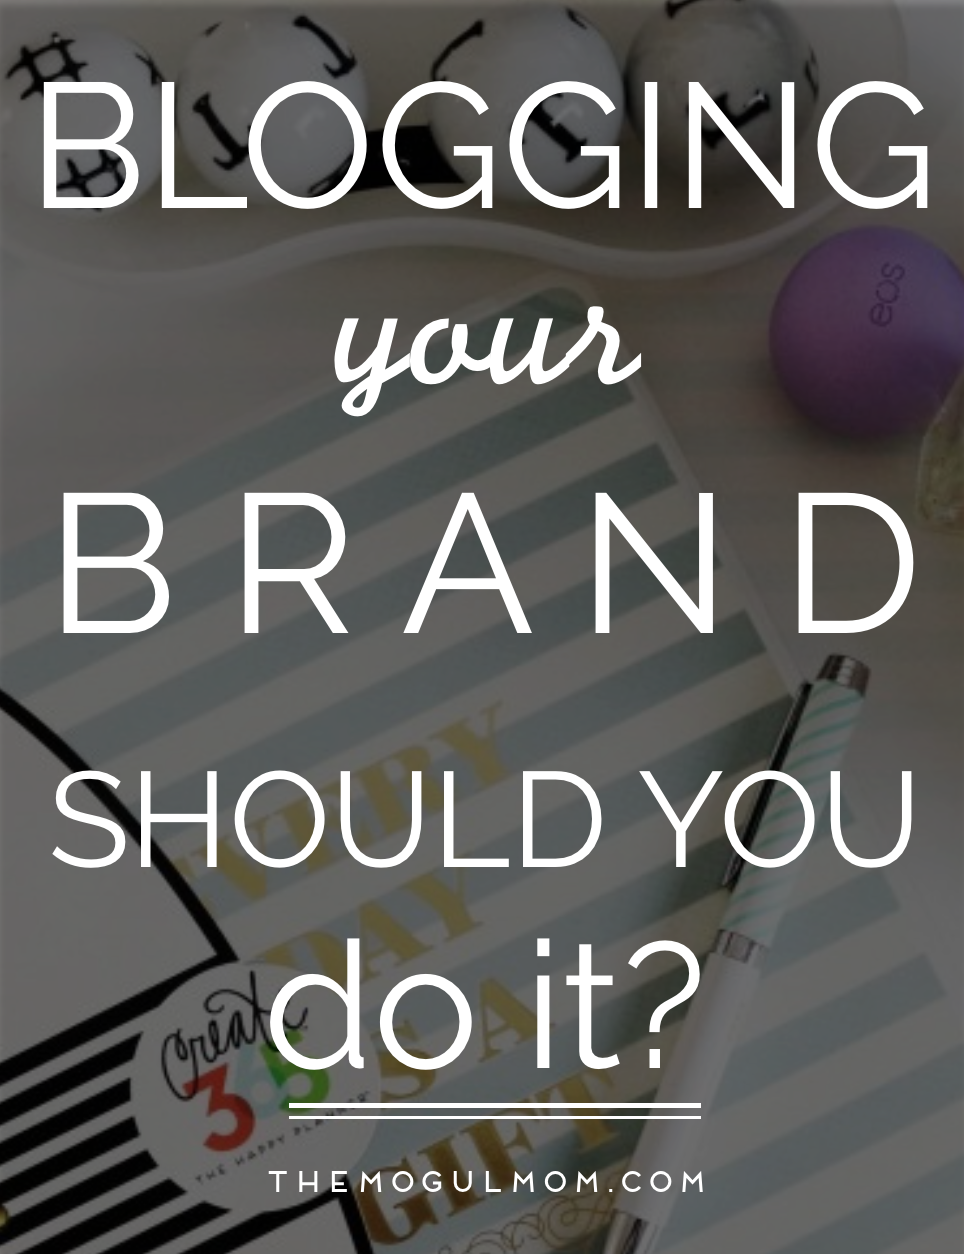 Blogging Your Brand. Should You Do It?